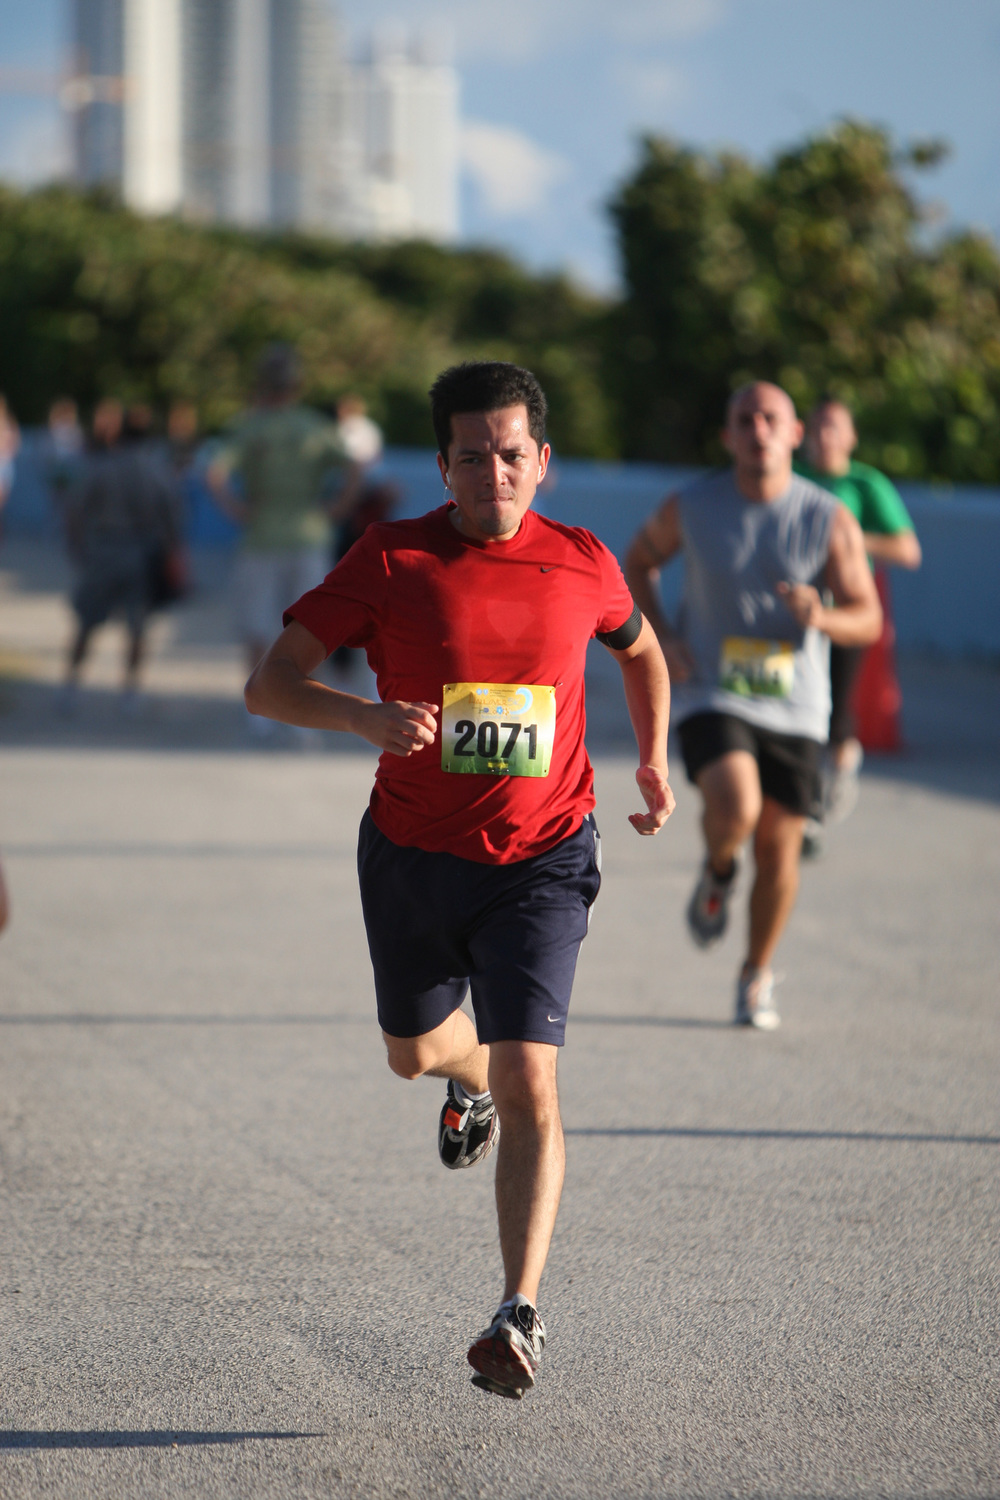 Sept 21, 2008: My first official 5k, Haulover 5k